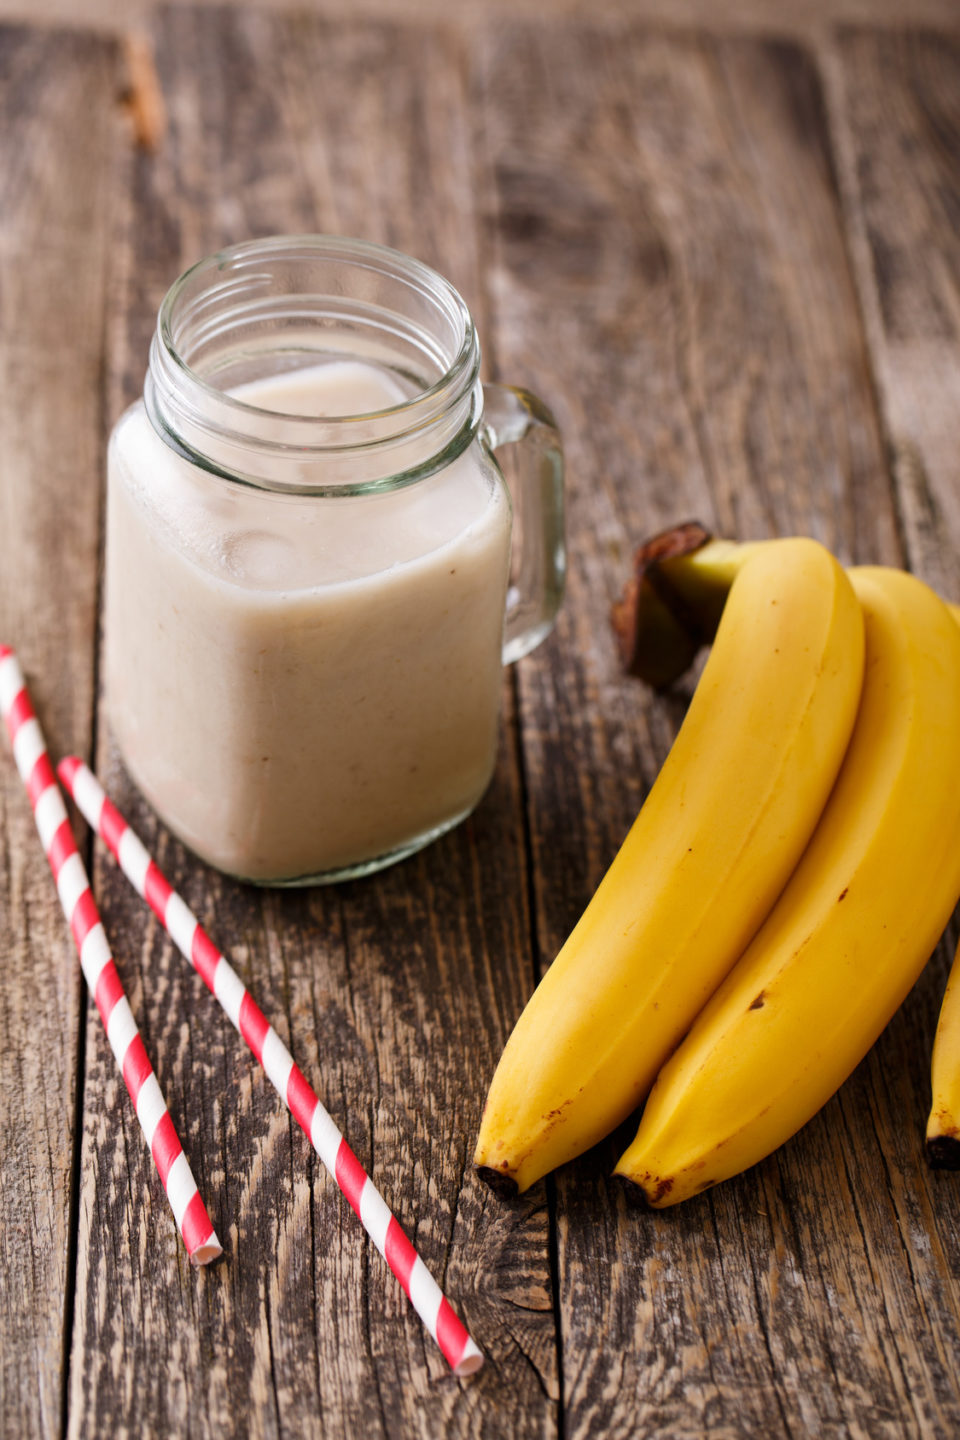 Delicious banana smoothie in glass jar with drinking straw and bananas on table.